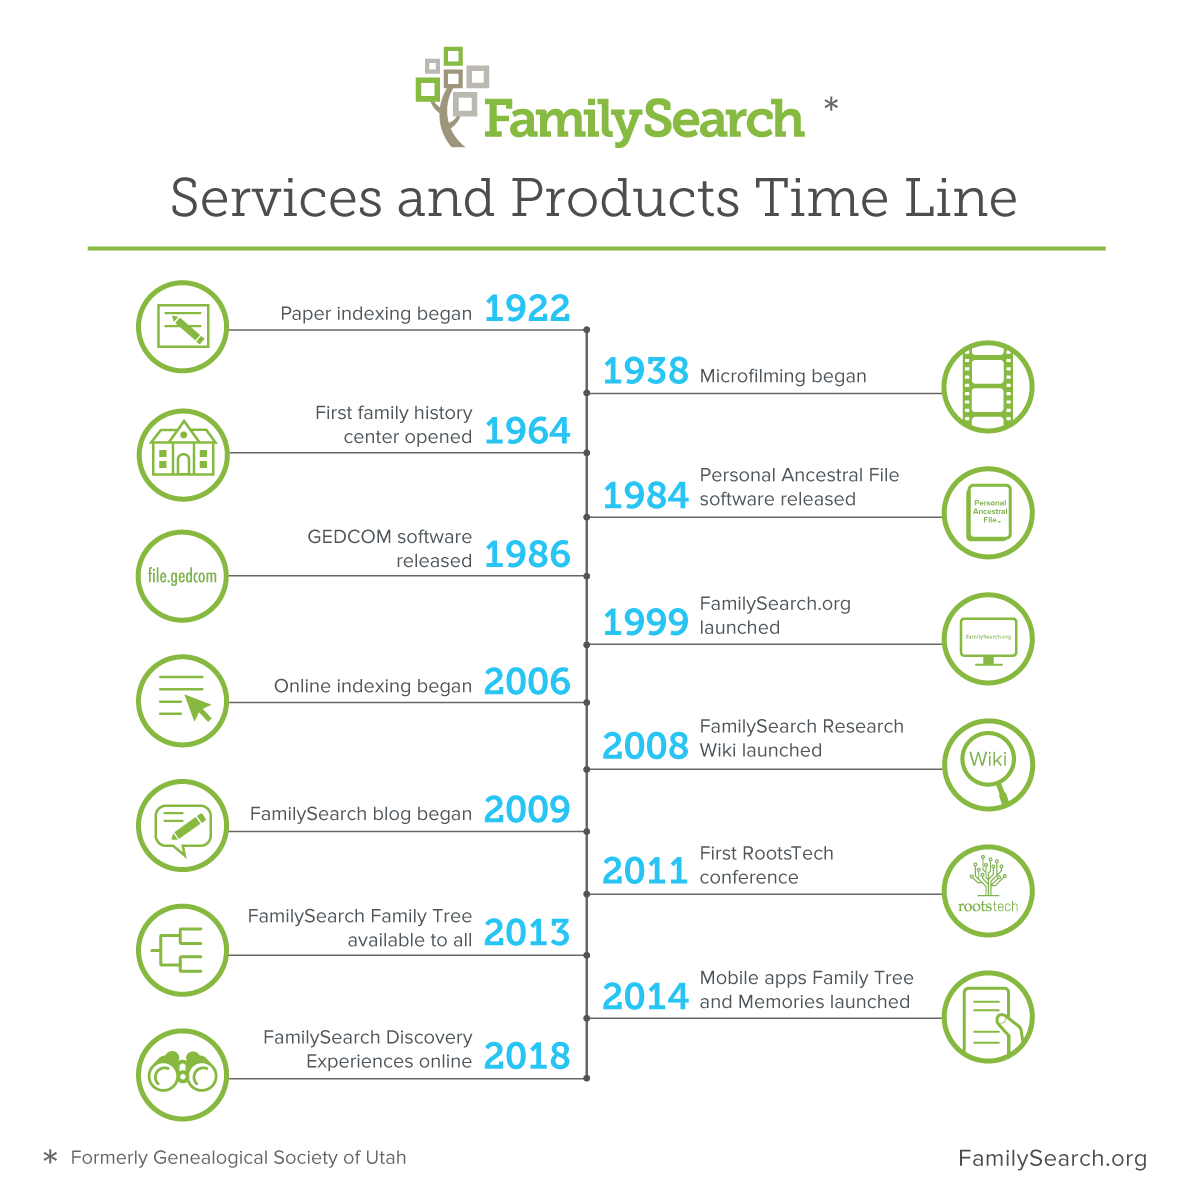 The services FamilySearch offers have evolved since the organizations establishment in 1894.